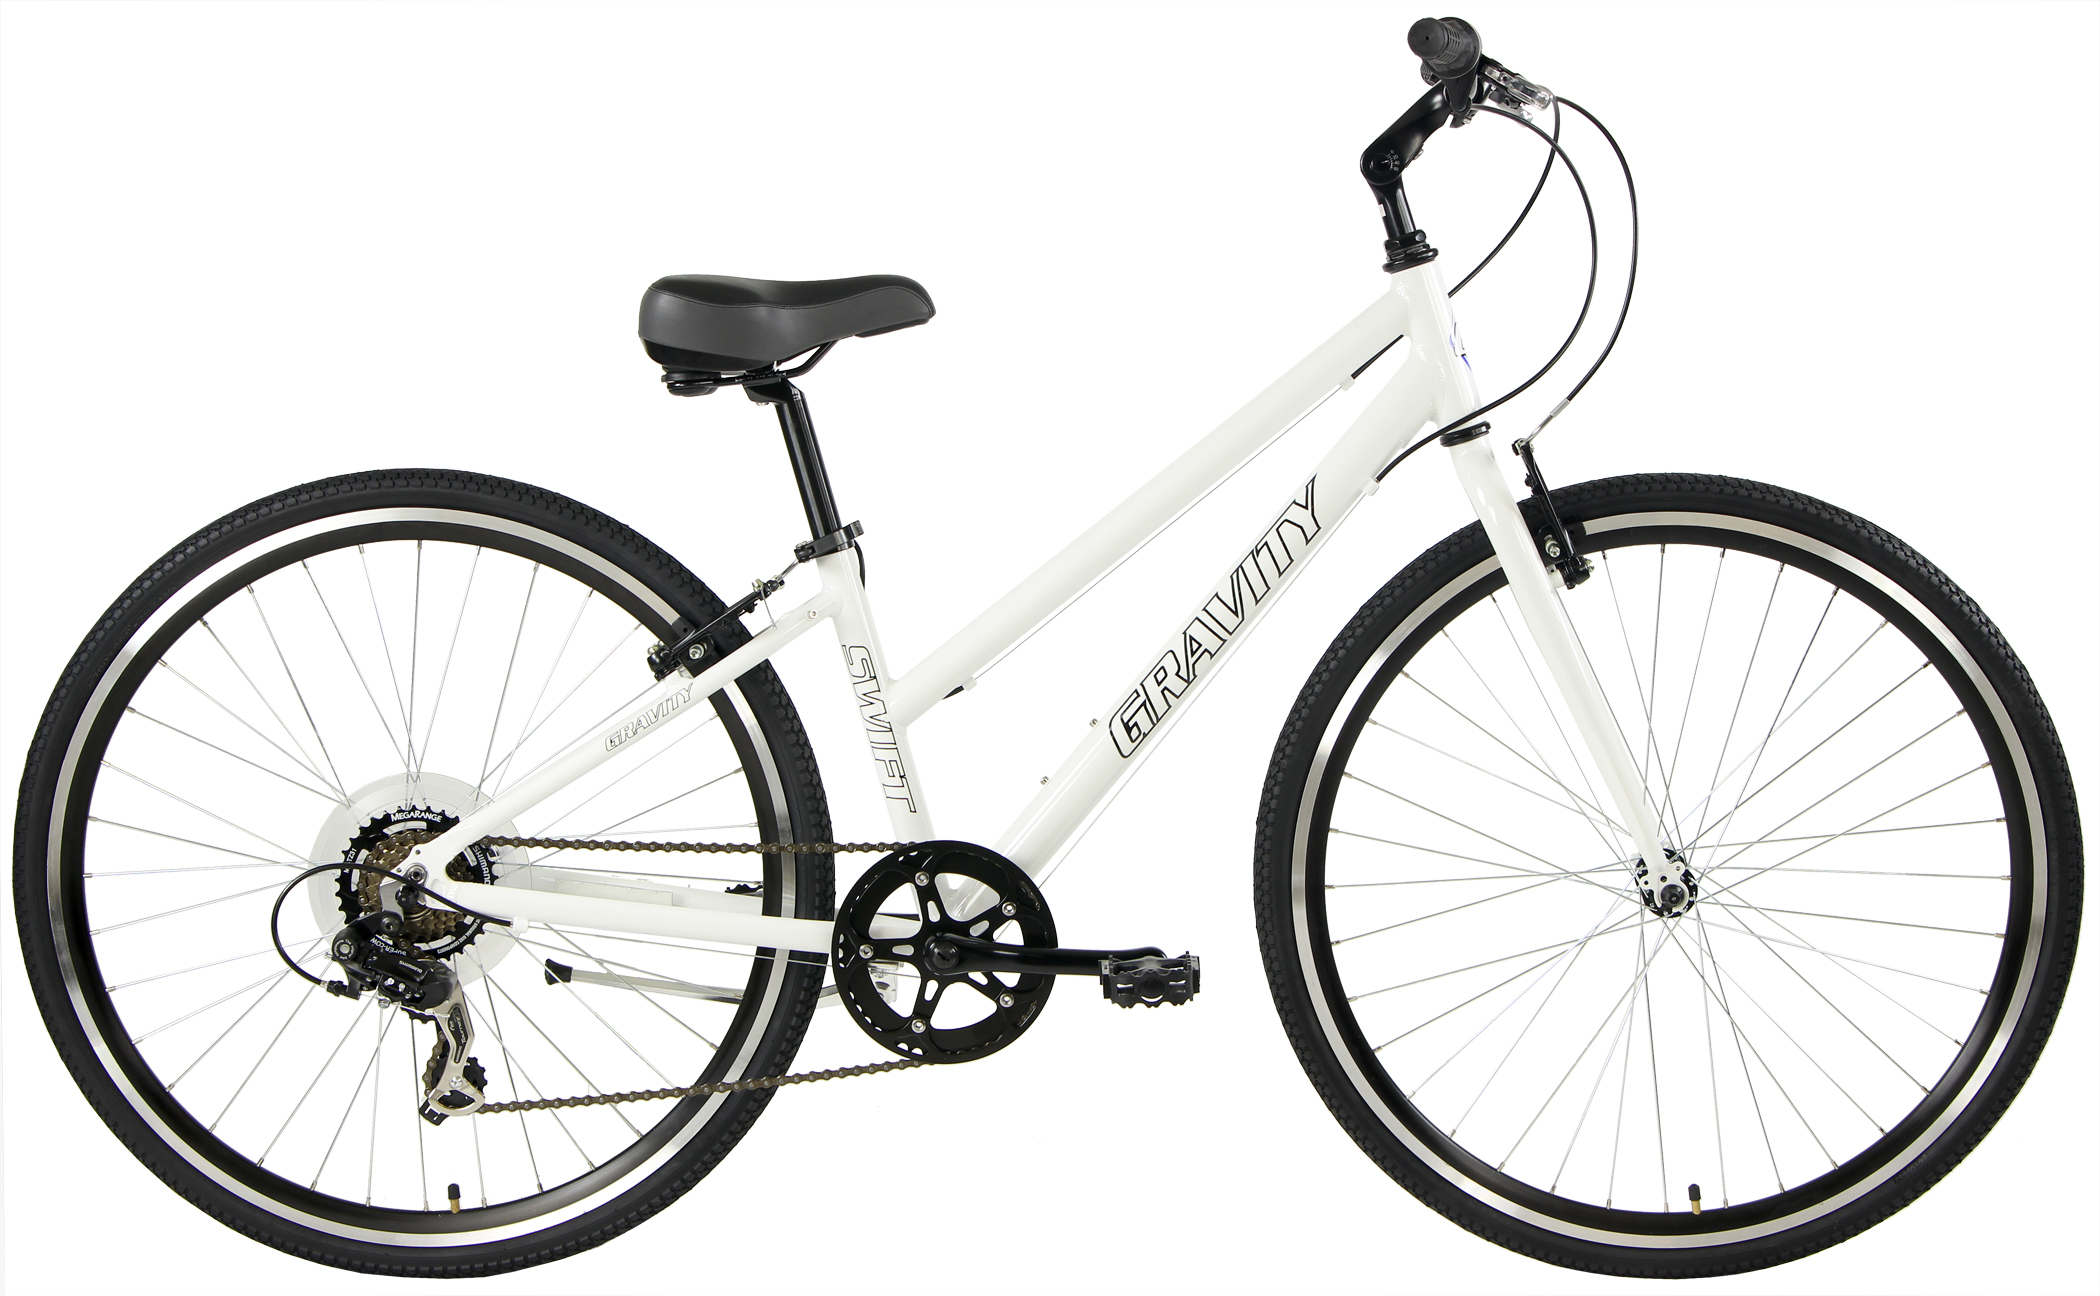 Bike 3 Speed Hybrid Women's Fargo Nd Urban City bikes for women